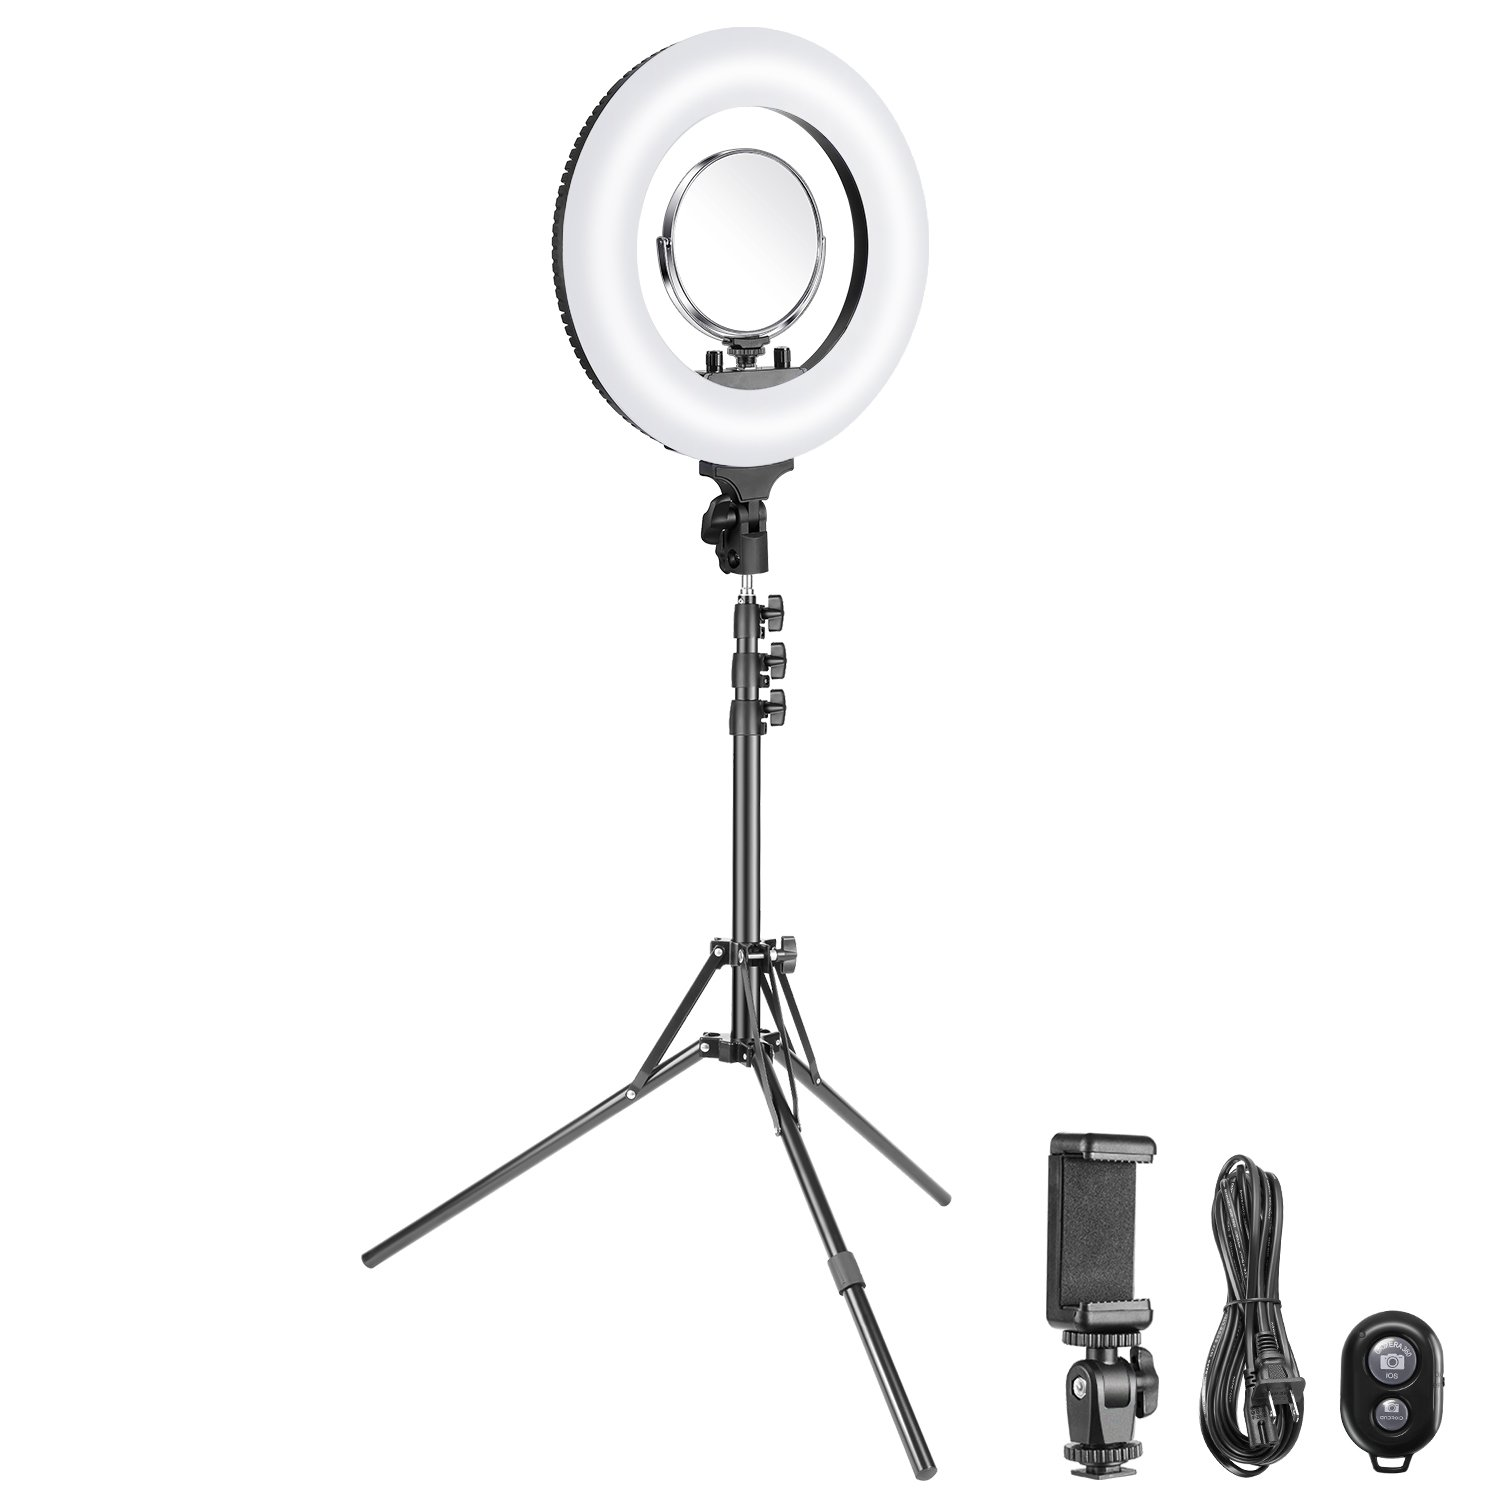 Neewer 14-inch Outer Dimmable SMD LED Ring Light with 69-inch Stand Kit 40W Bi-color 3200k-5500k with Cosmetic Mirror and Phone Holder for Photo Portrait Photography,Make Up,YouTube Video Shooting